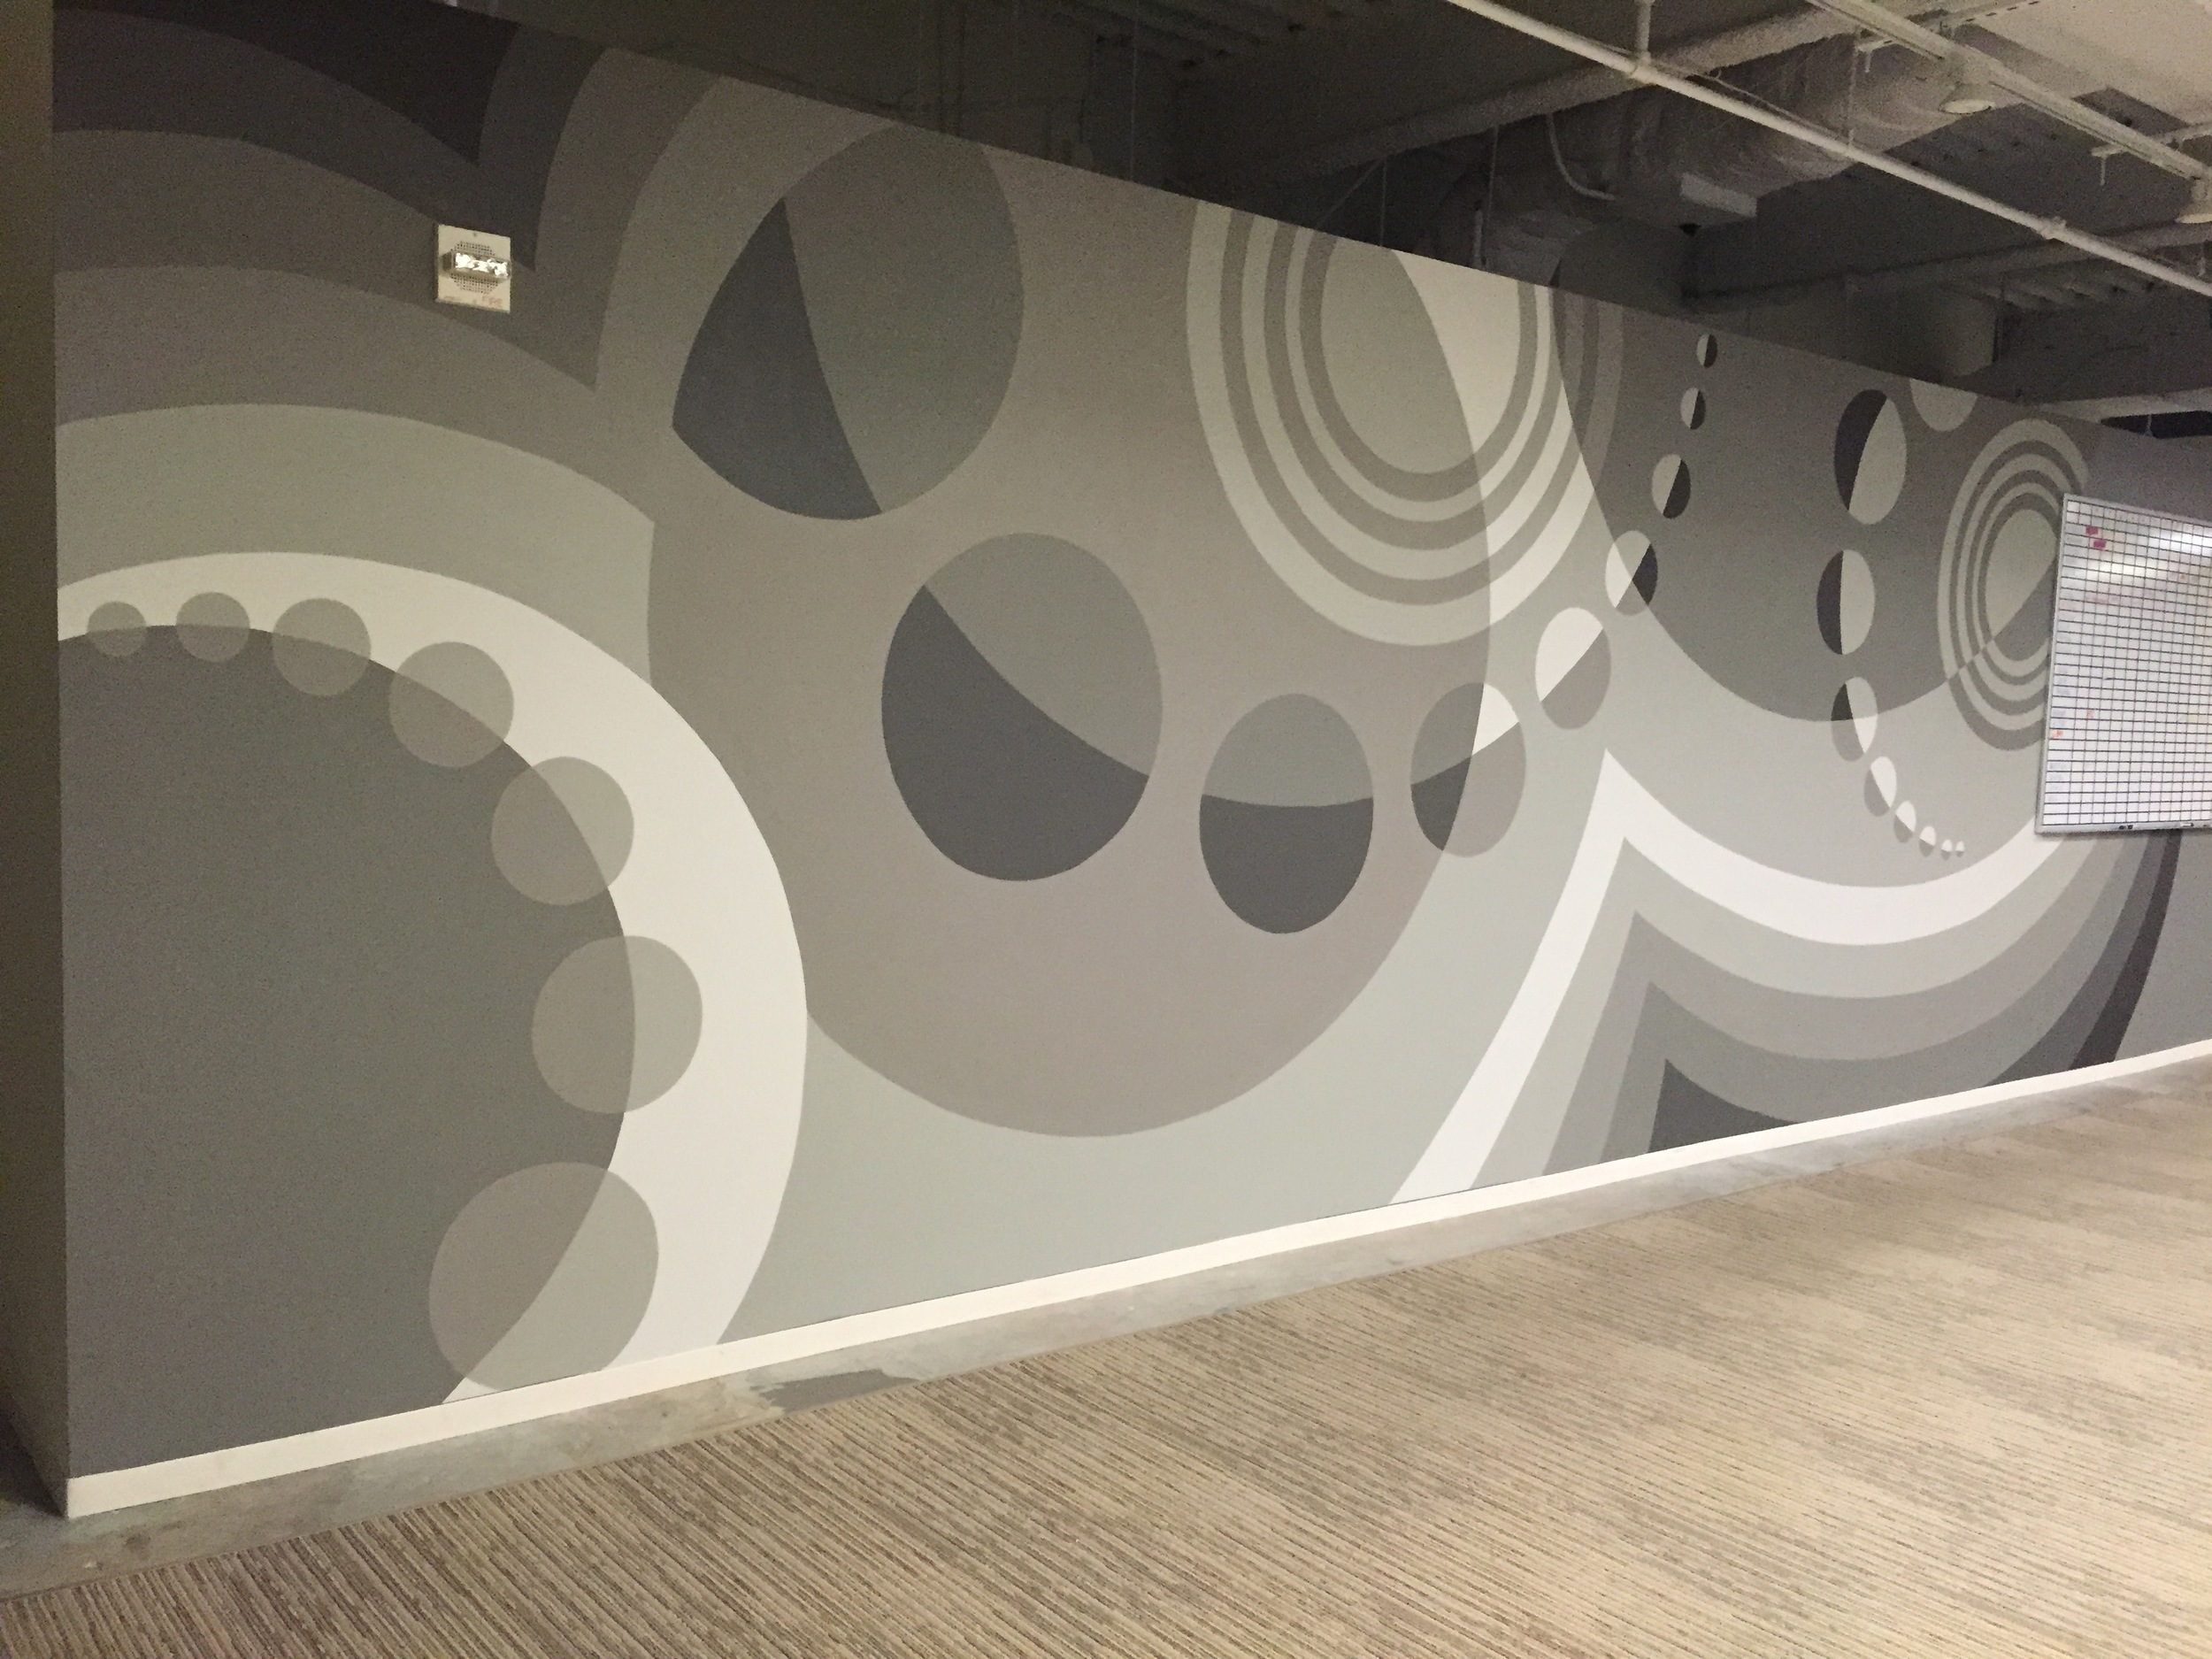 Grayscale Mural for LiquidHub– an Advertising Agency in Downtown Atlanta / 2016